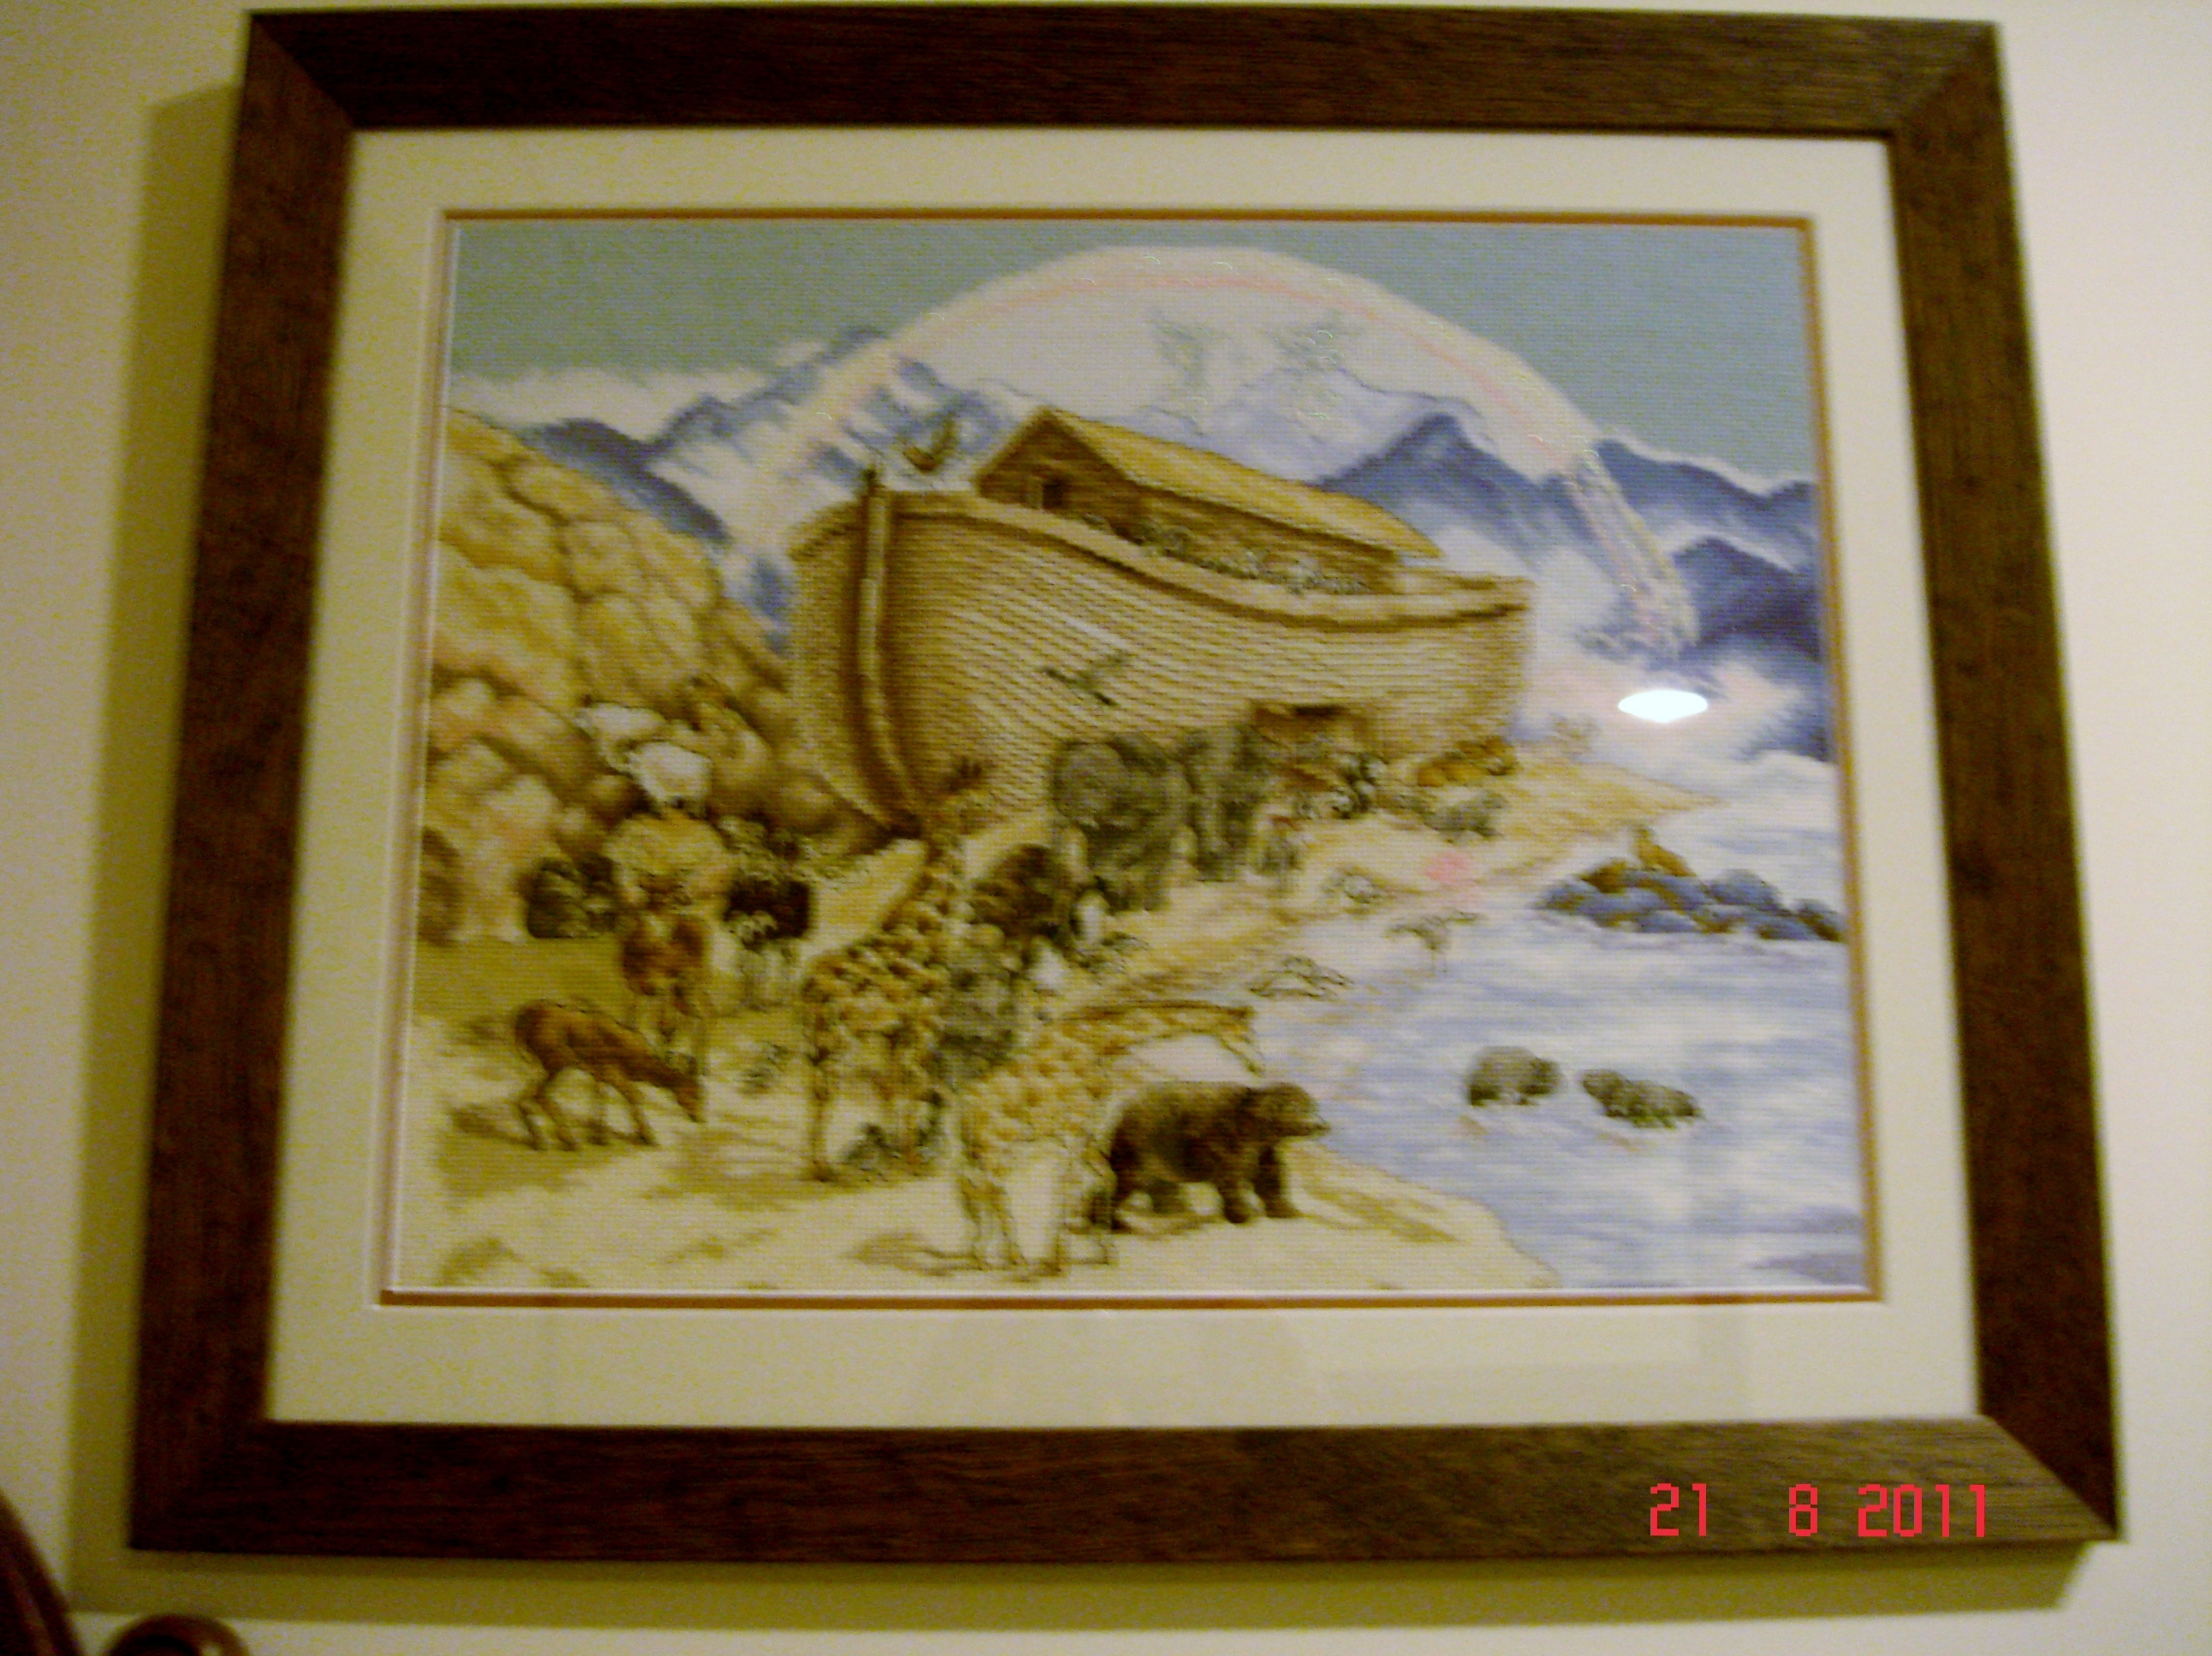 Noah s ark framed 001  2